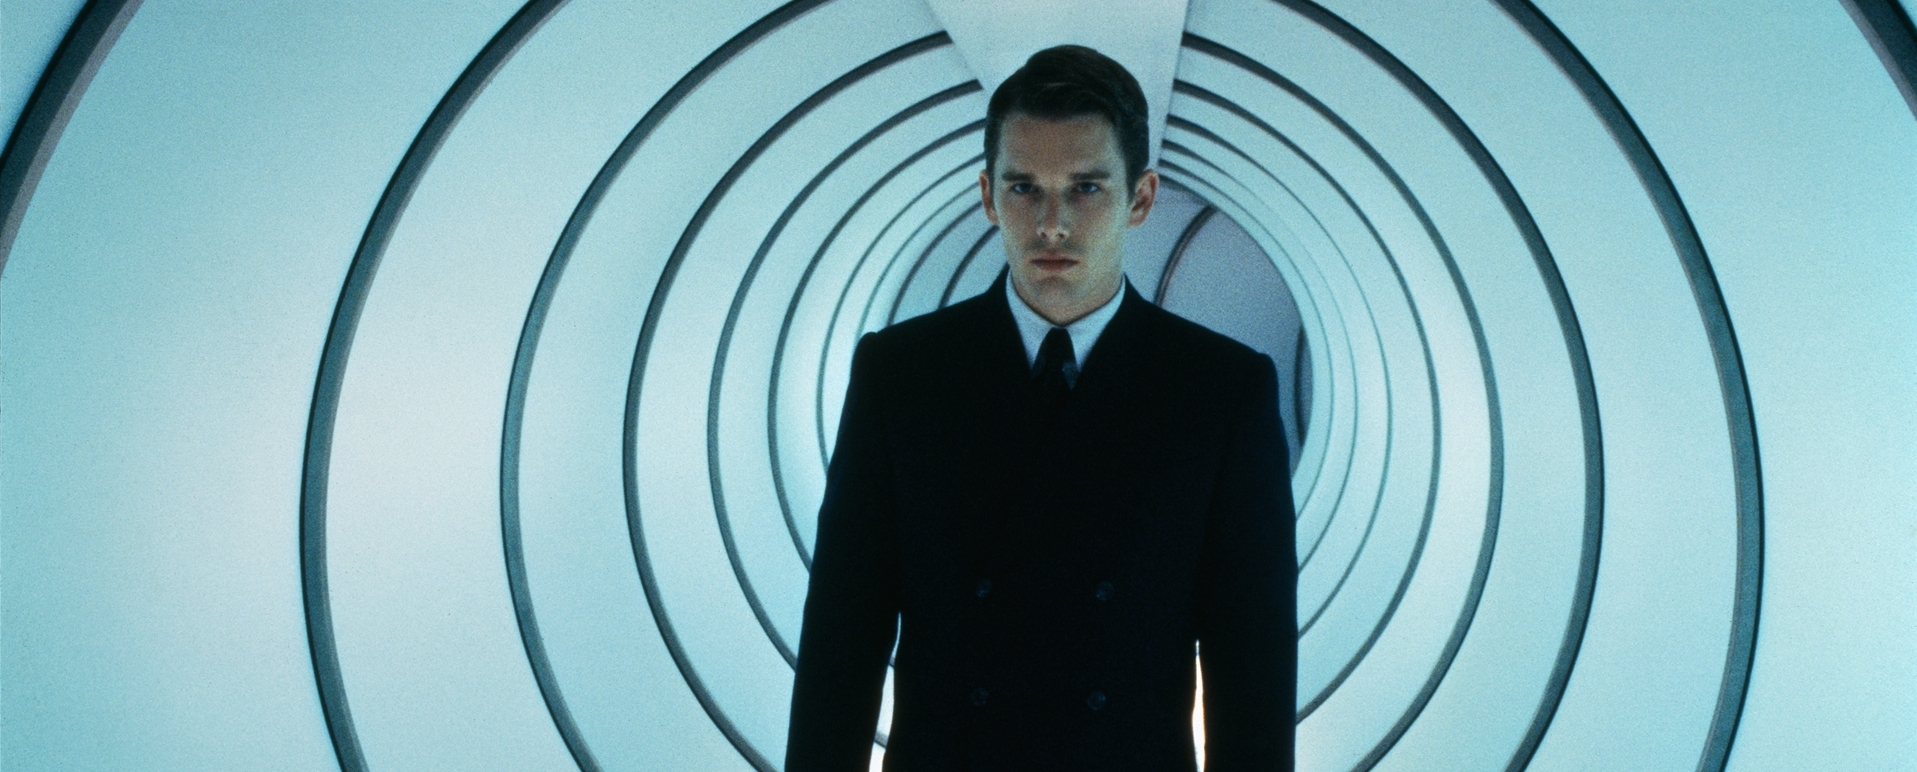 A photo of Ethan Hawke as Vincent pretending to be Jerome. He is wearing a suit, and is standing in a tunnel that appears to be bluish white in color. The tunnel is circular, and has black lines running around the circle in between from space to space behind him.